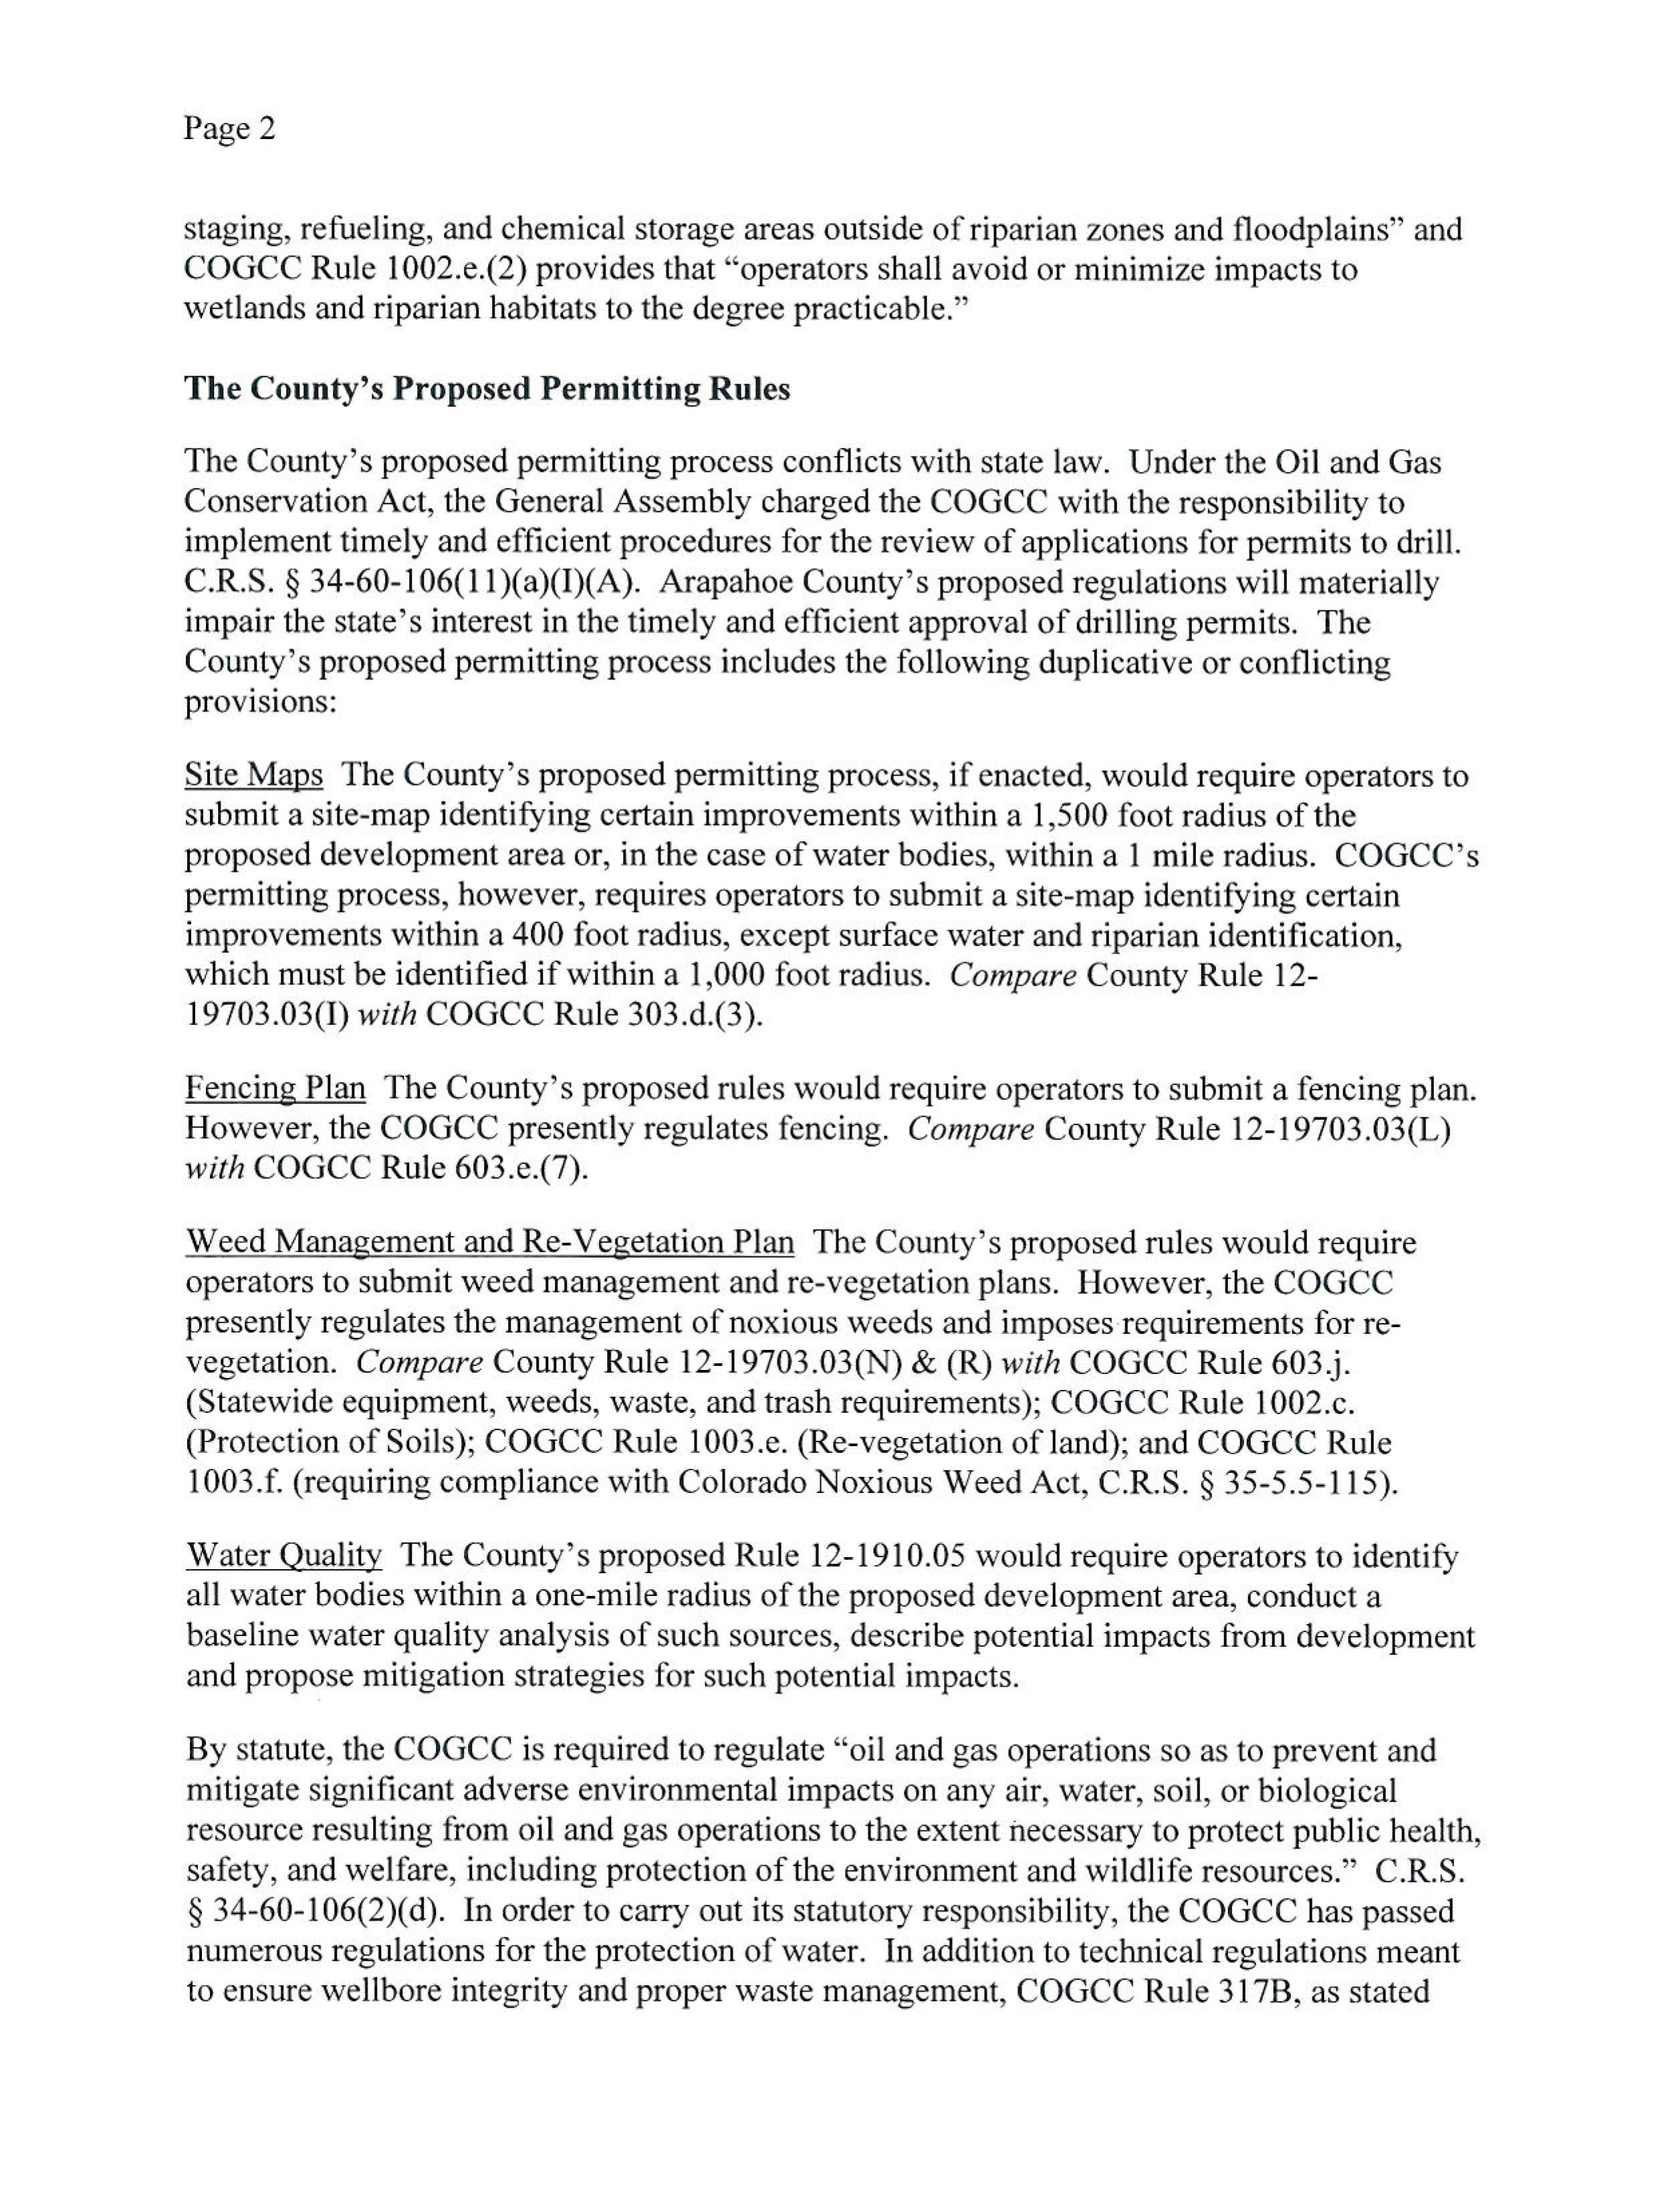 RE Arapahoe County's proposed oil and gas regulations page 2